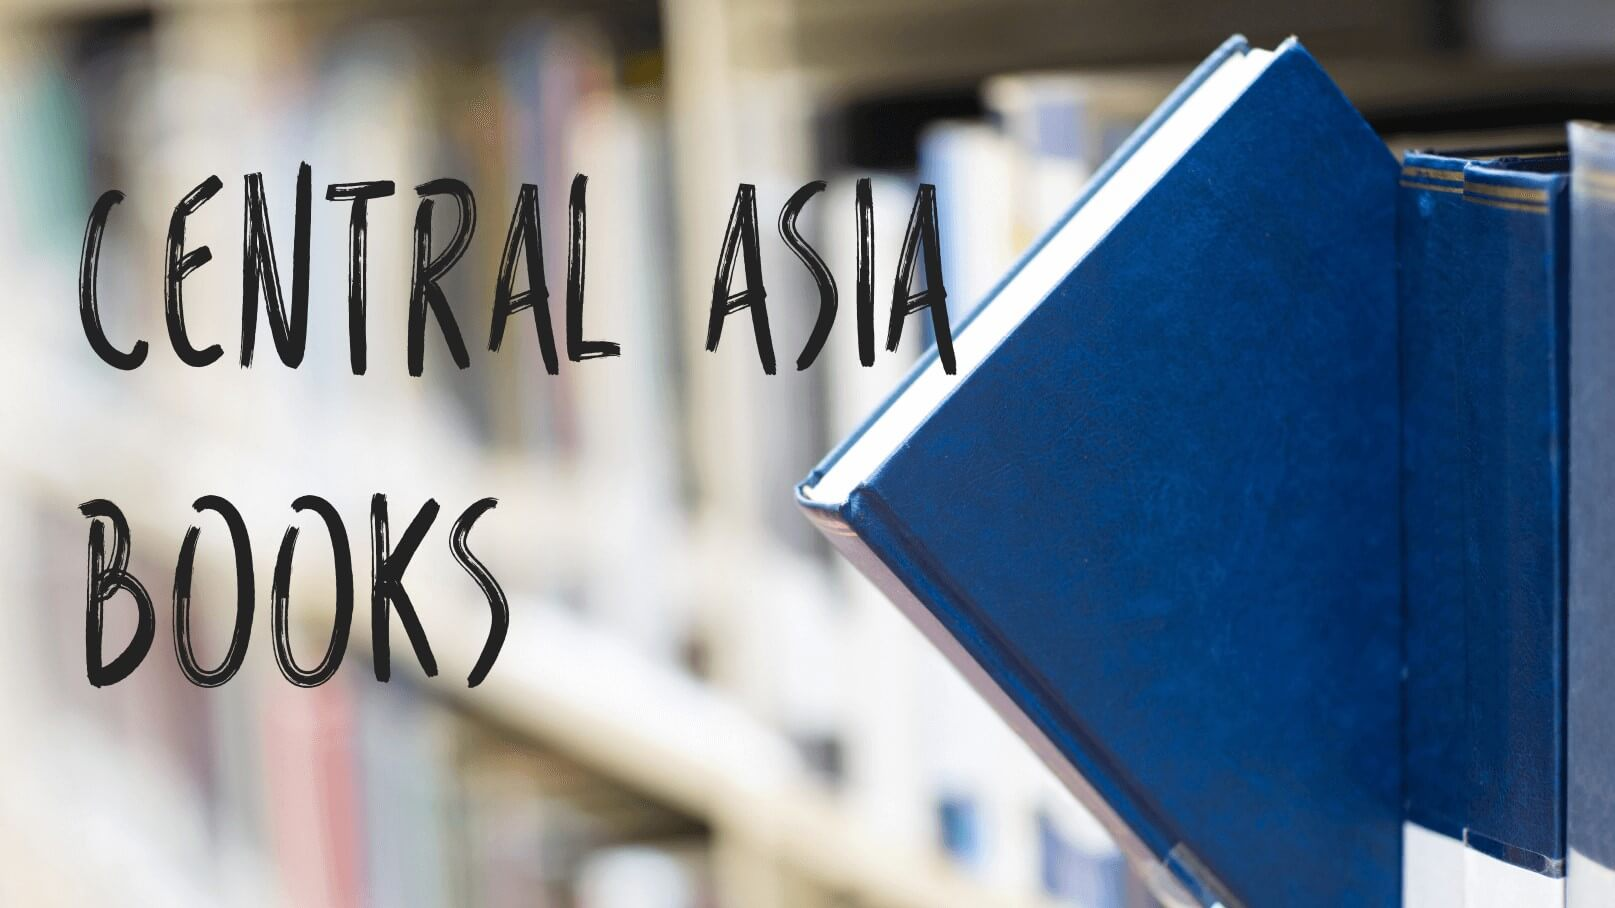 Central Asia Books blog